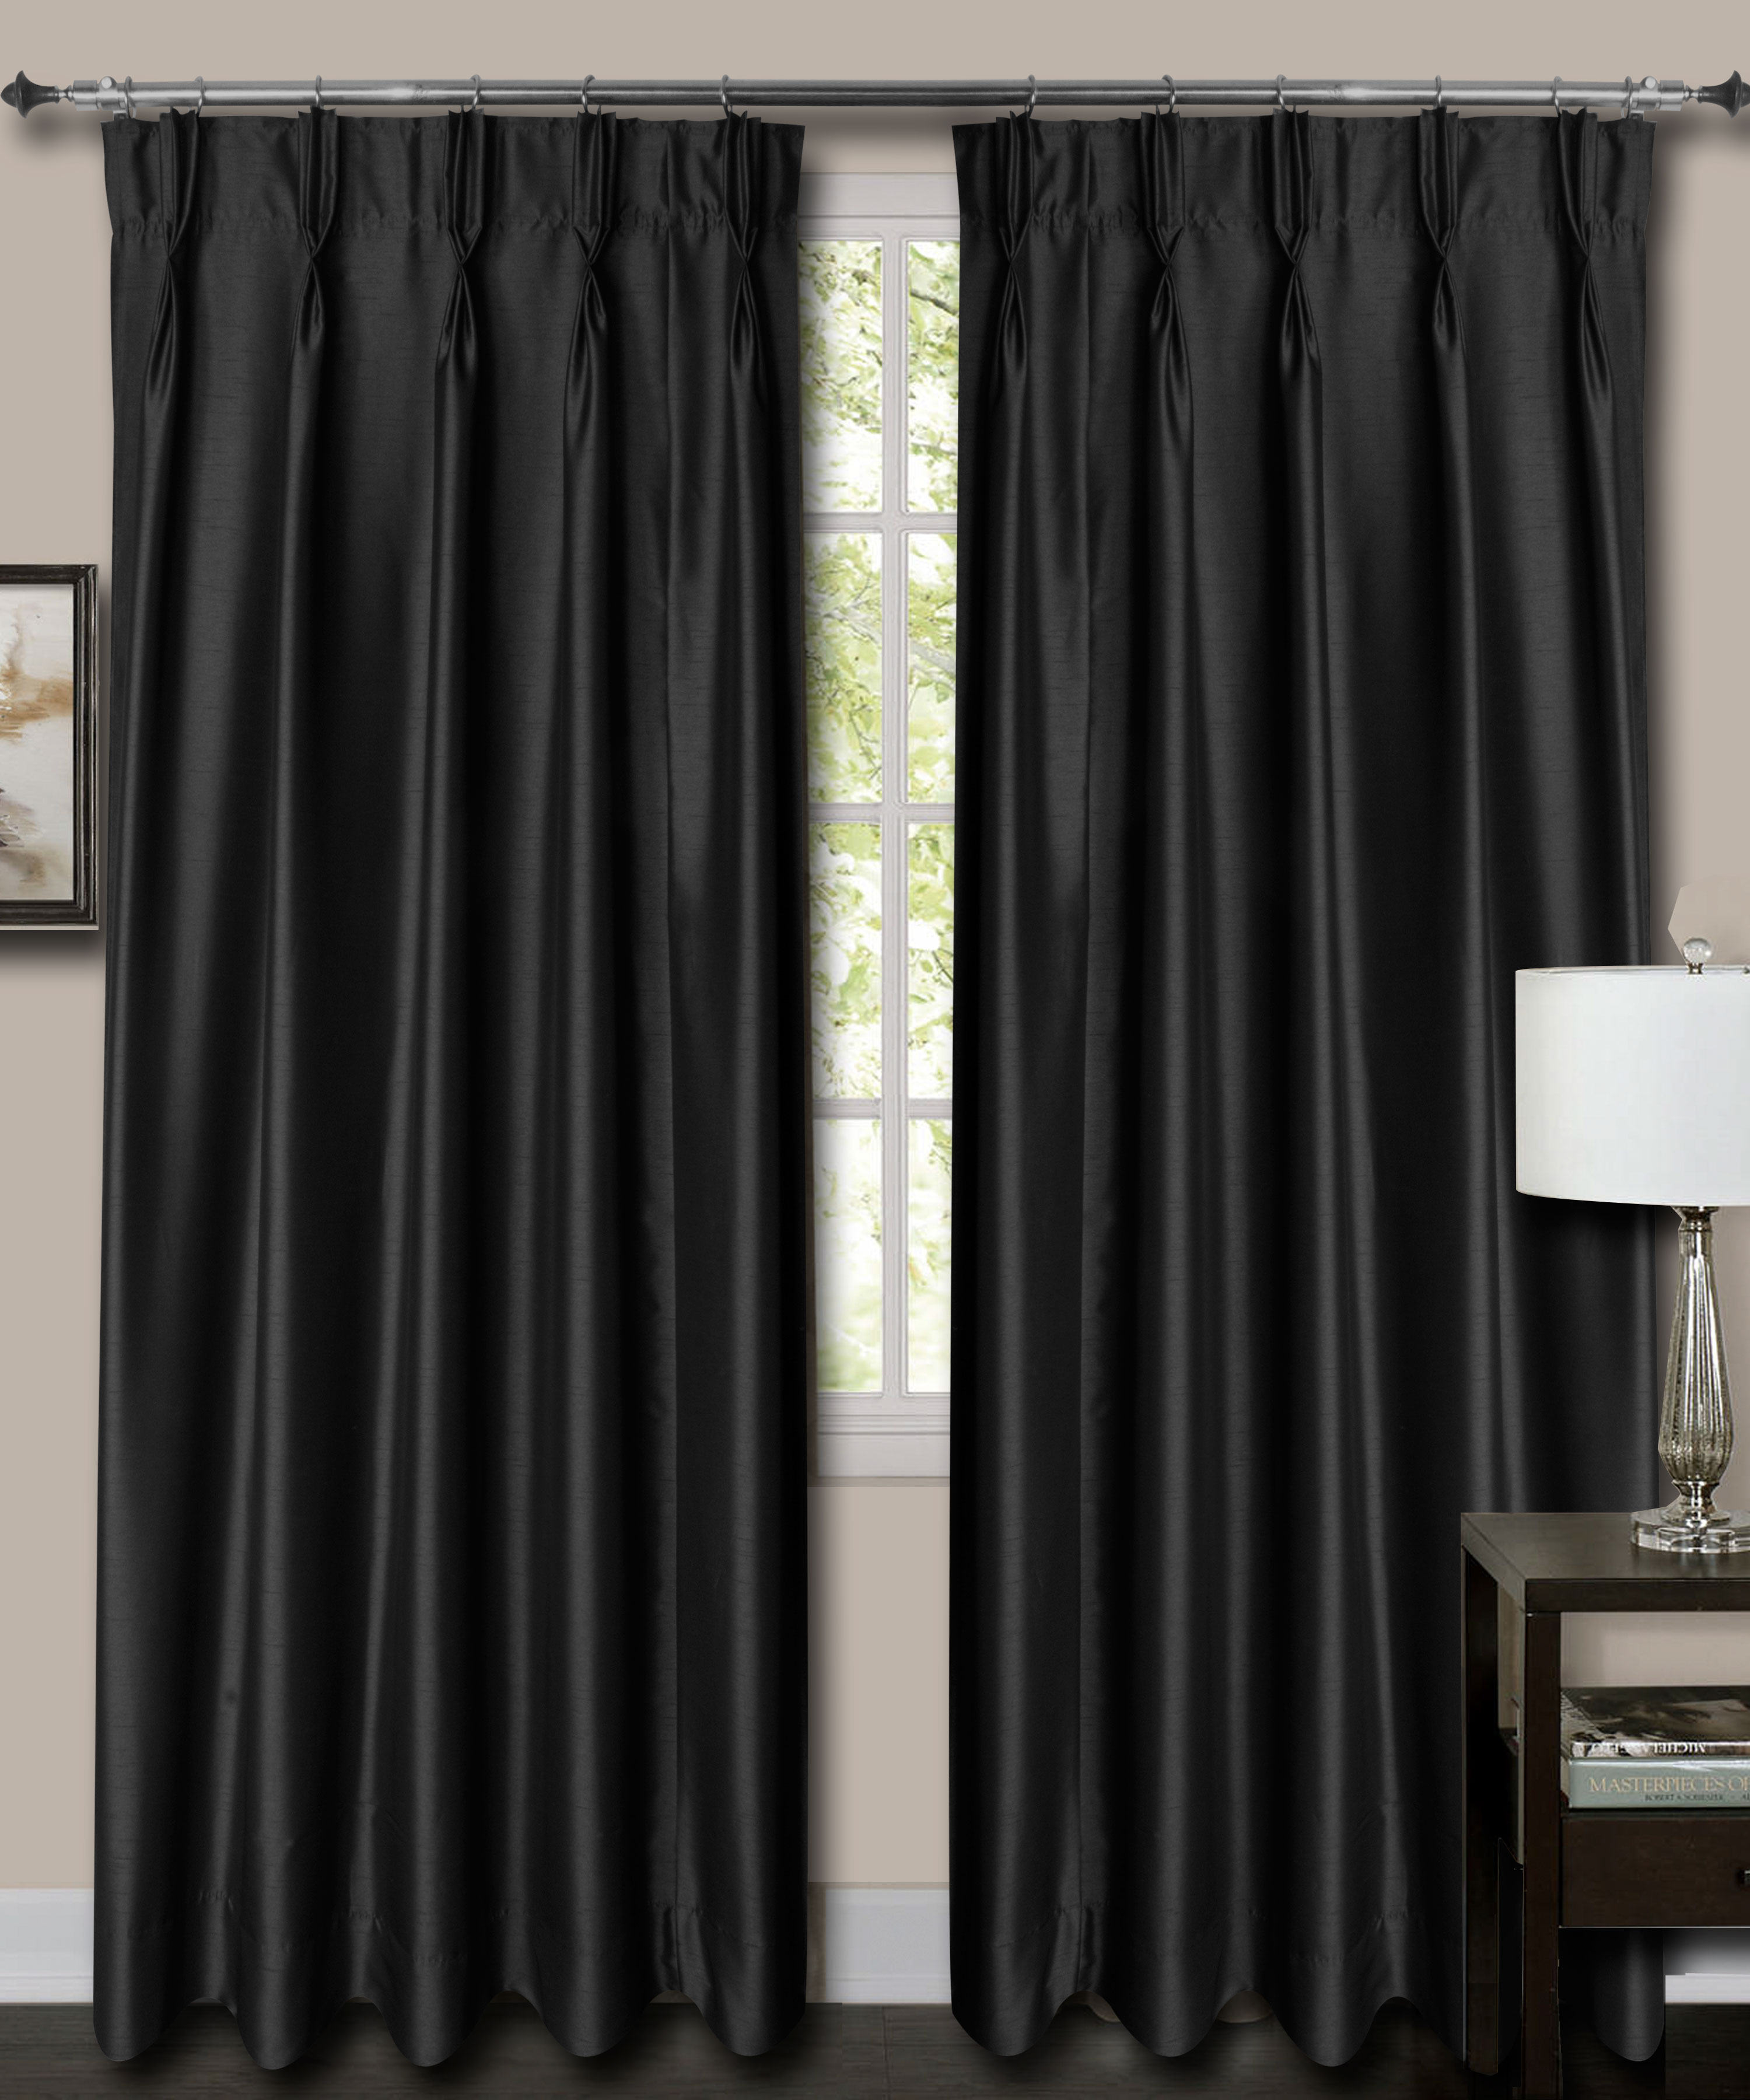 """French Pleat Top Black Faux Silk Dupioni Curtains. (65"""" Wide, 9 Feet Long, Blackout Lining)"""